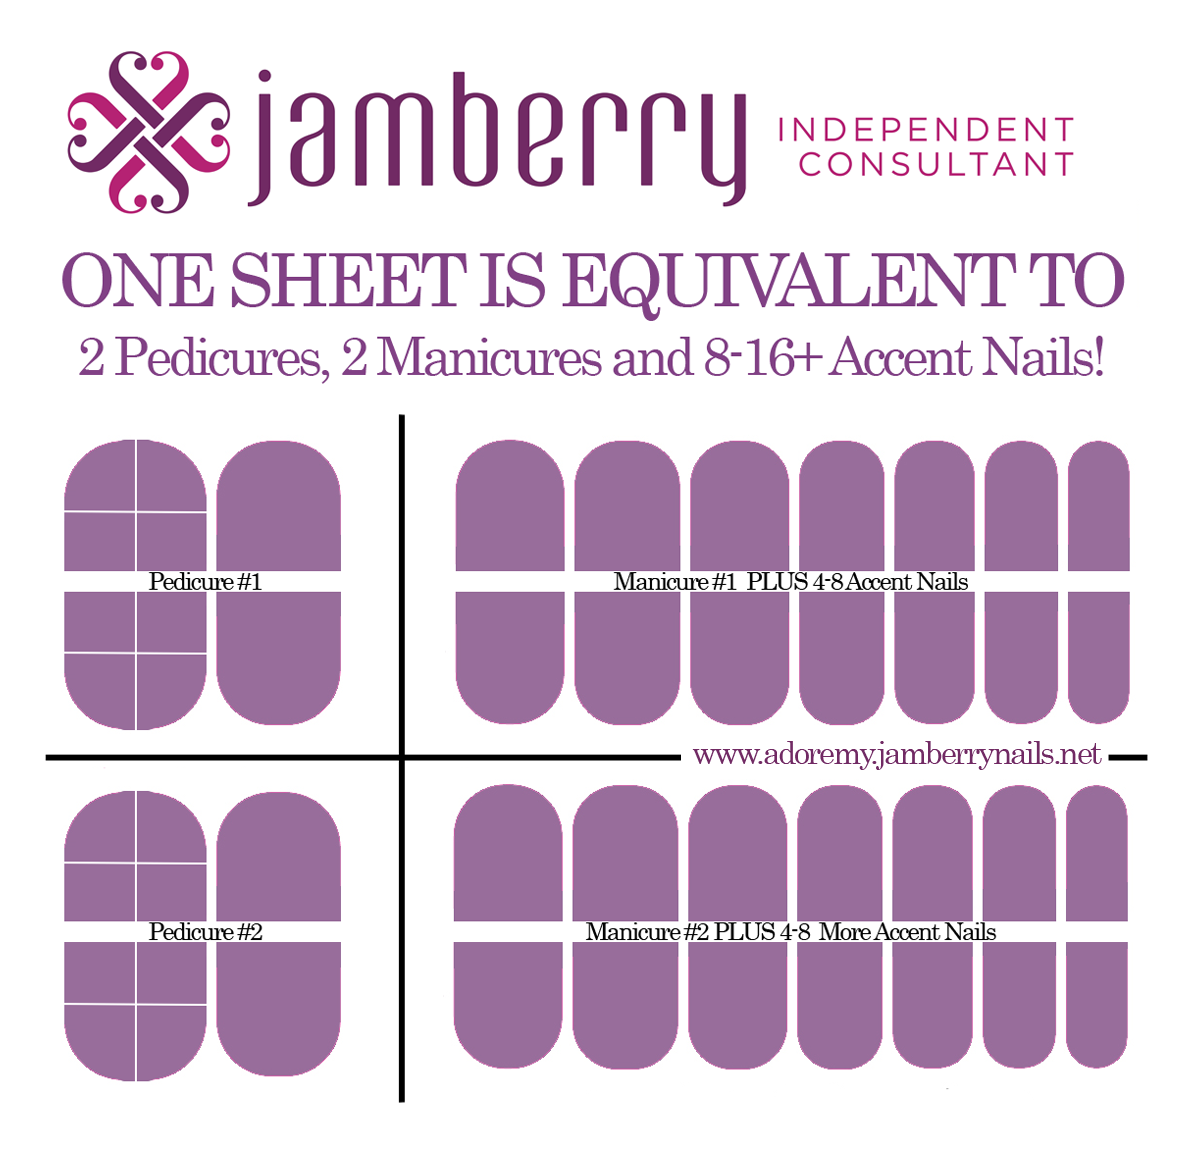 how to make jamberry nail wraps last longer